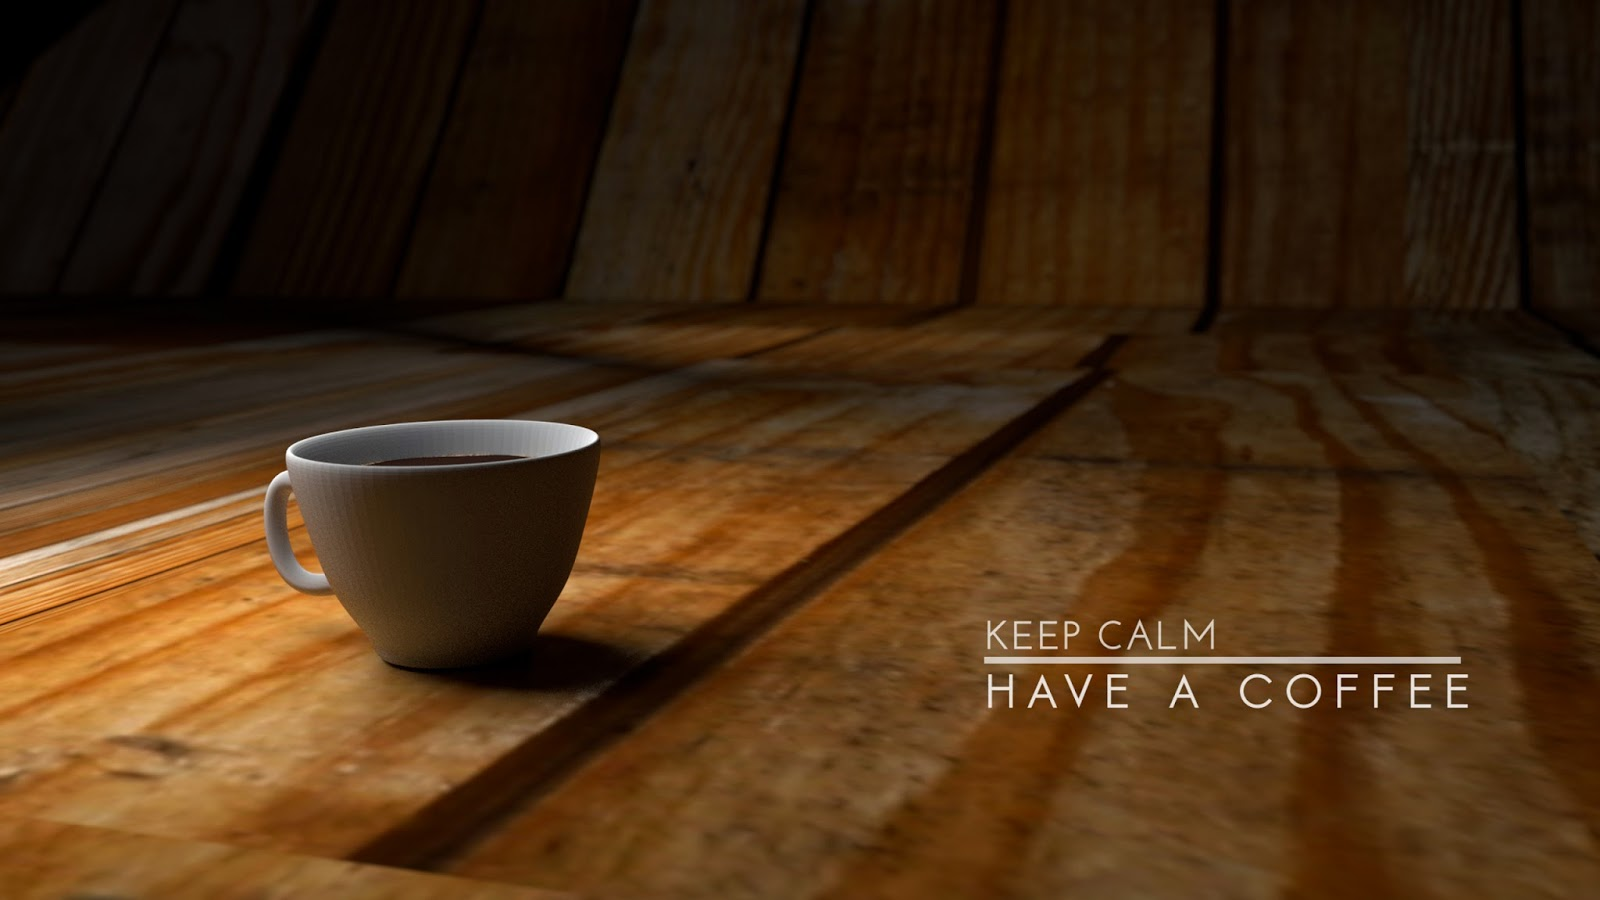 hot coffee wallpaper hd - photo #20